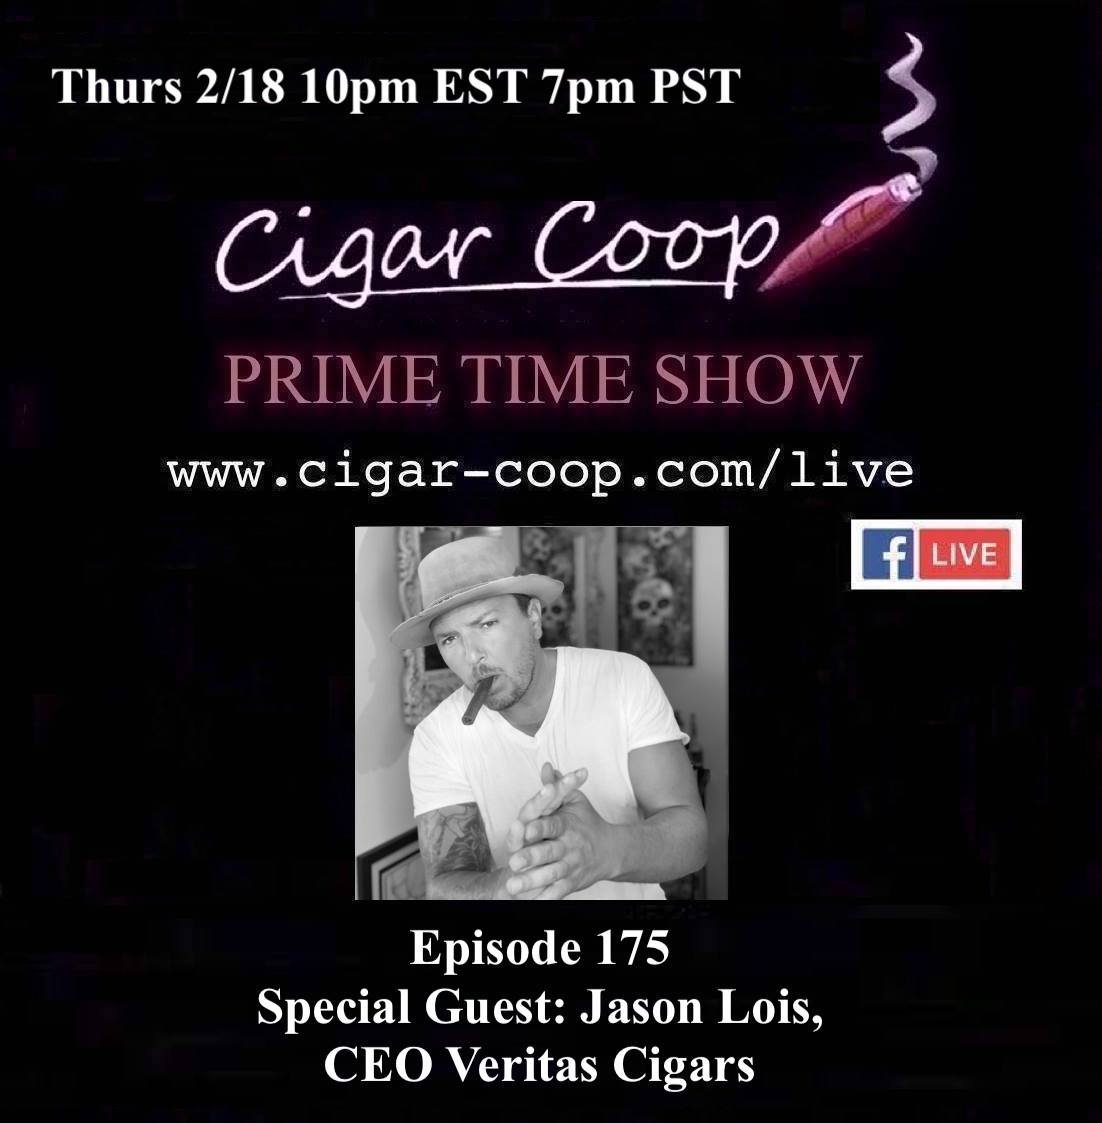 Announcement: Prime Time Episode 175 – Jason Lois, Veritas Cigars